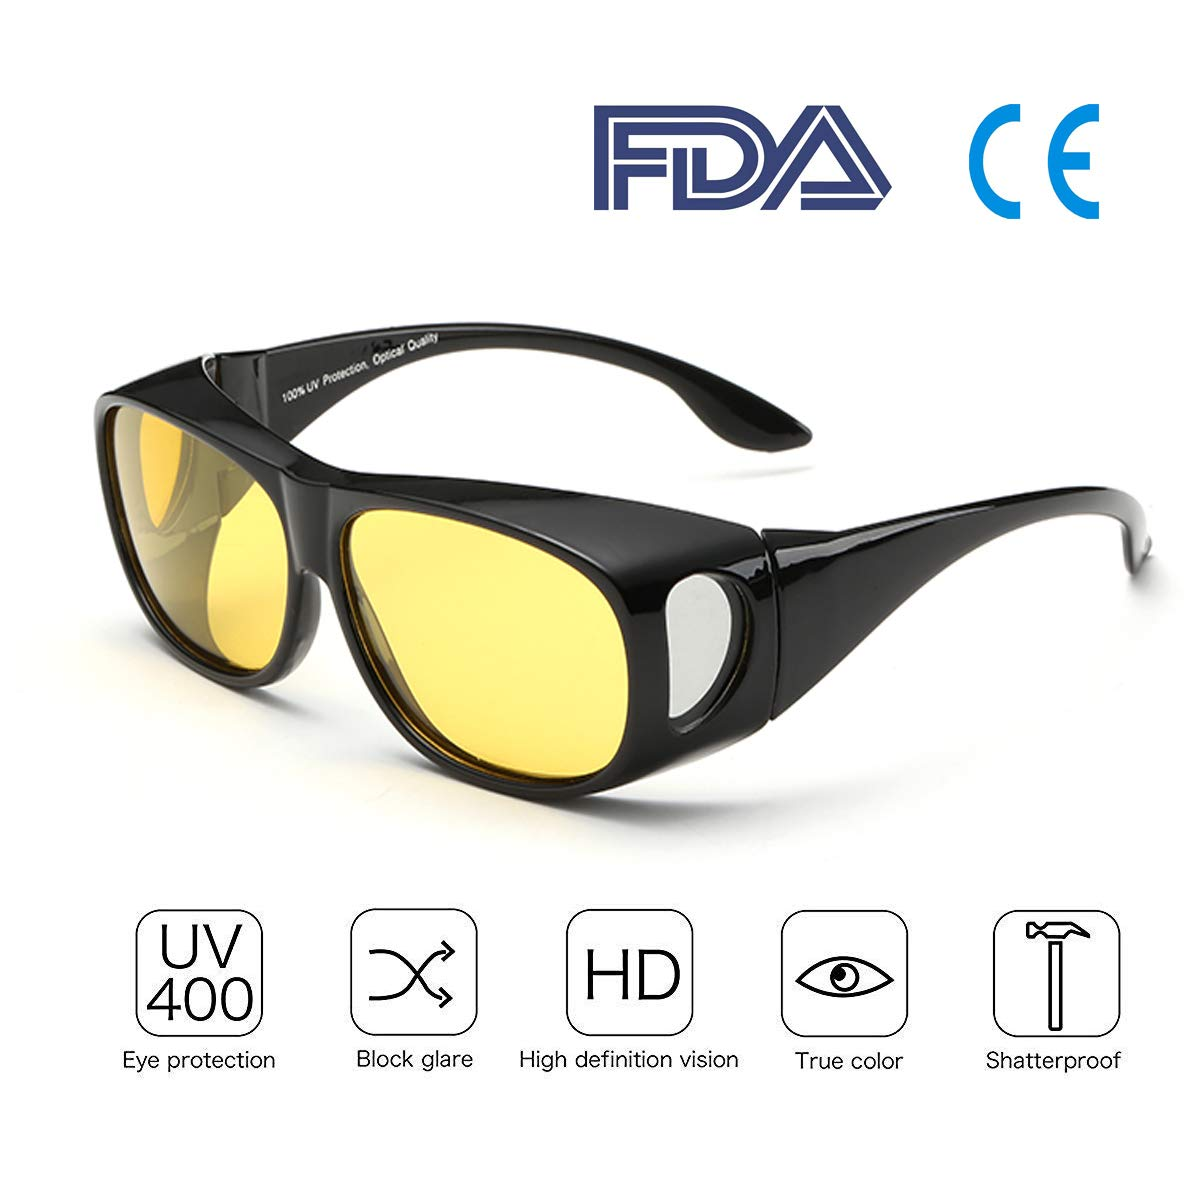 Best Night Driving Over anteojos de sol – para hombres y mujeres/Wrap Around Prescription Eyewear/Polarized Yellow Lens/Anti-Glare UV 400 Protección/Envoltorio de regalo